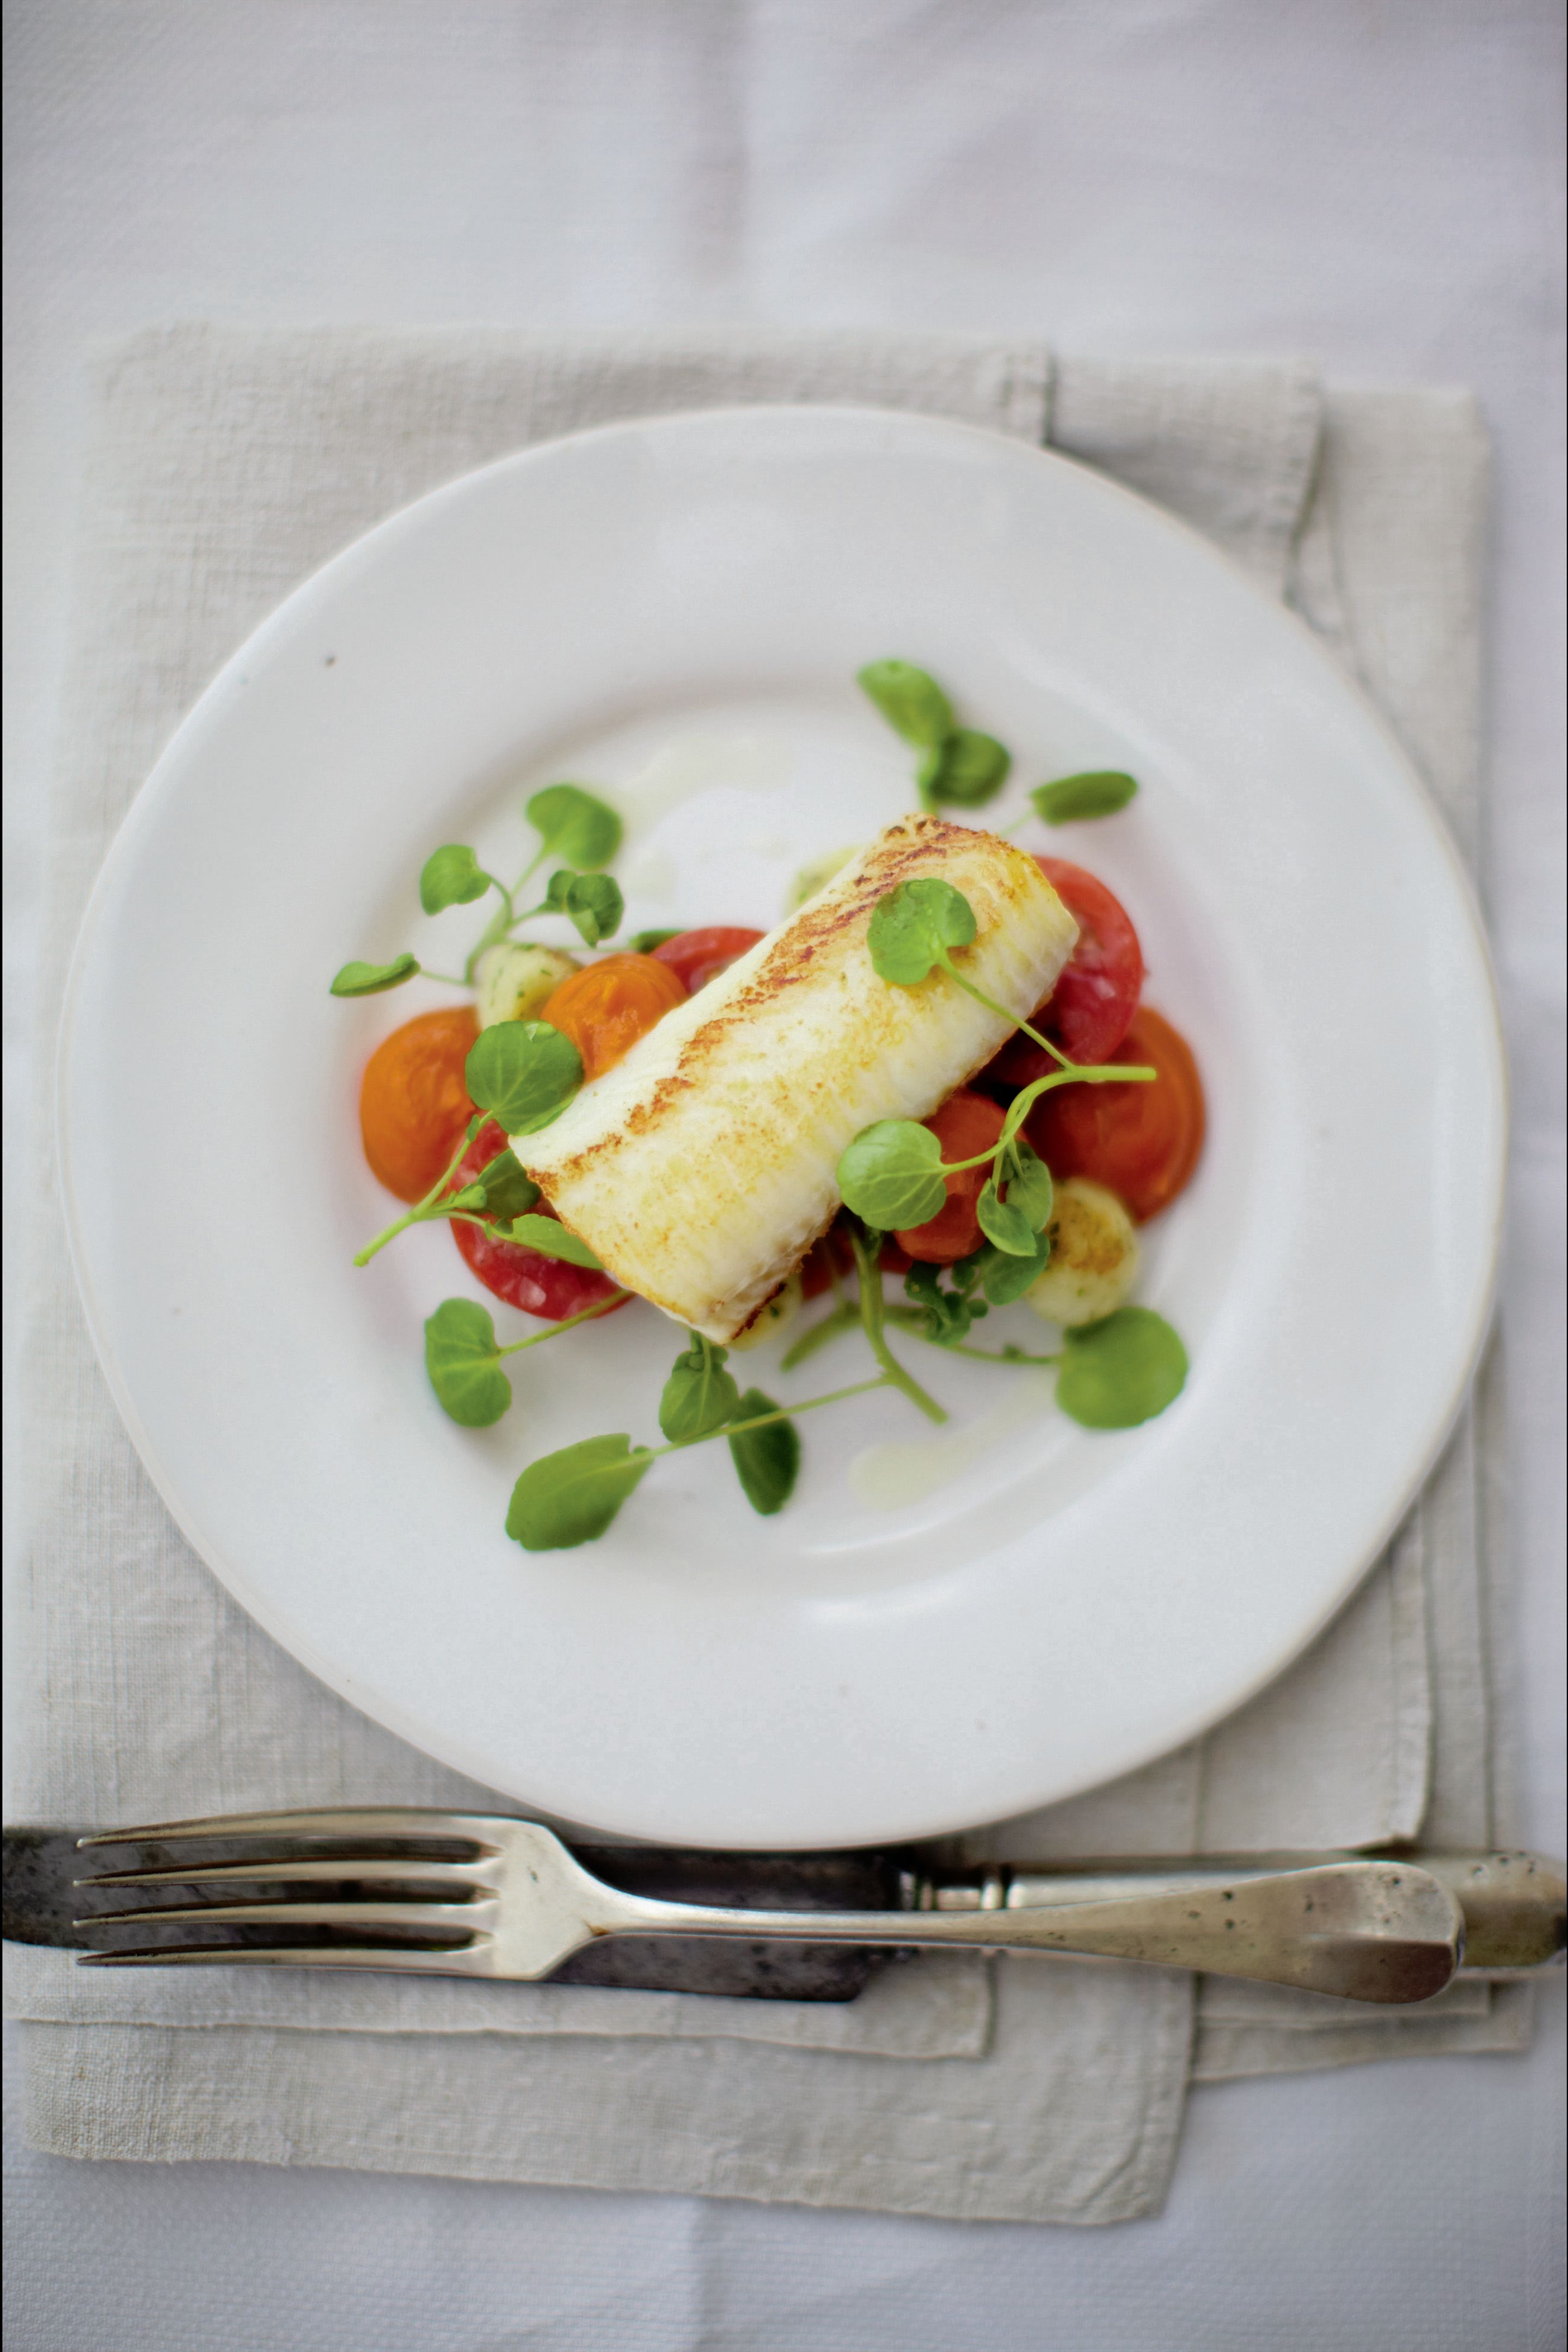 Rosemary cured haddock with tomatoes, watercress and ketchup